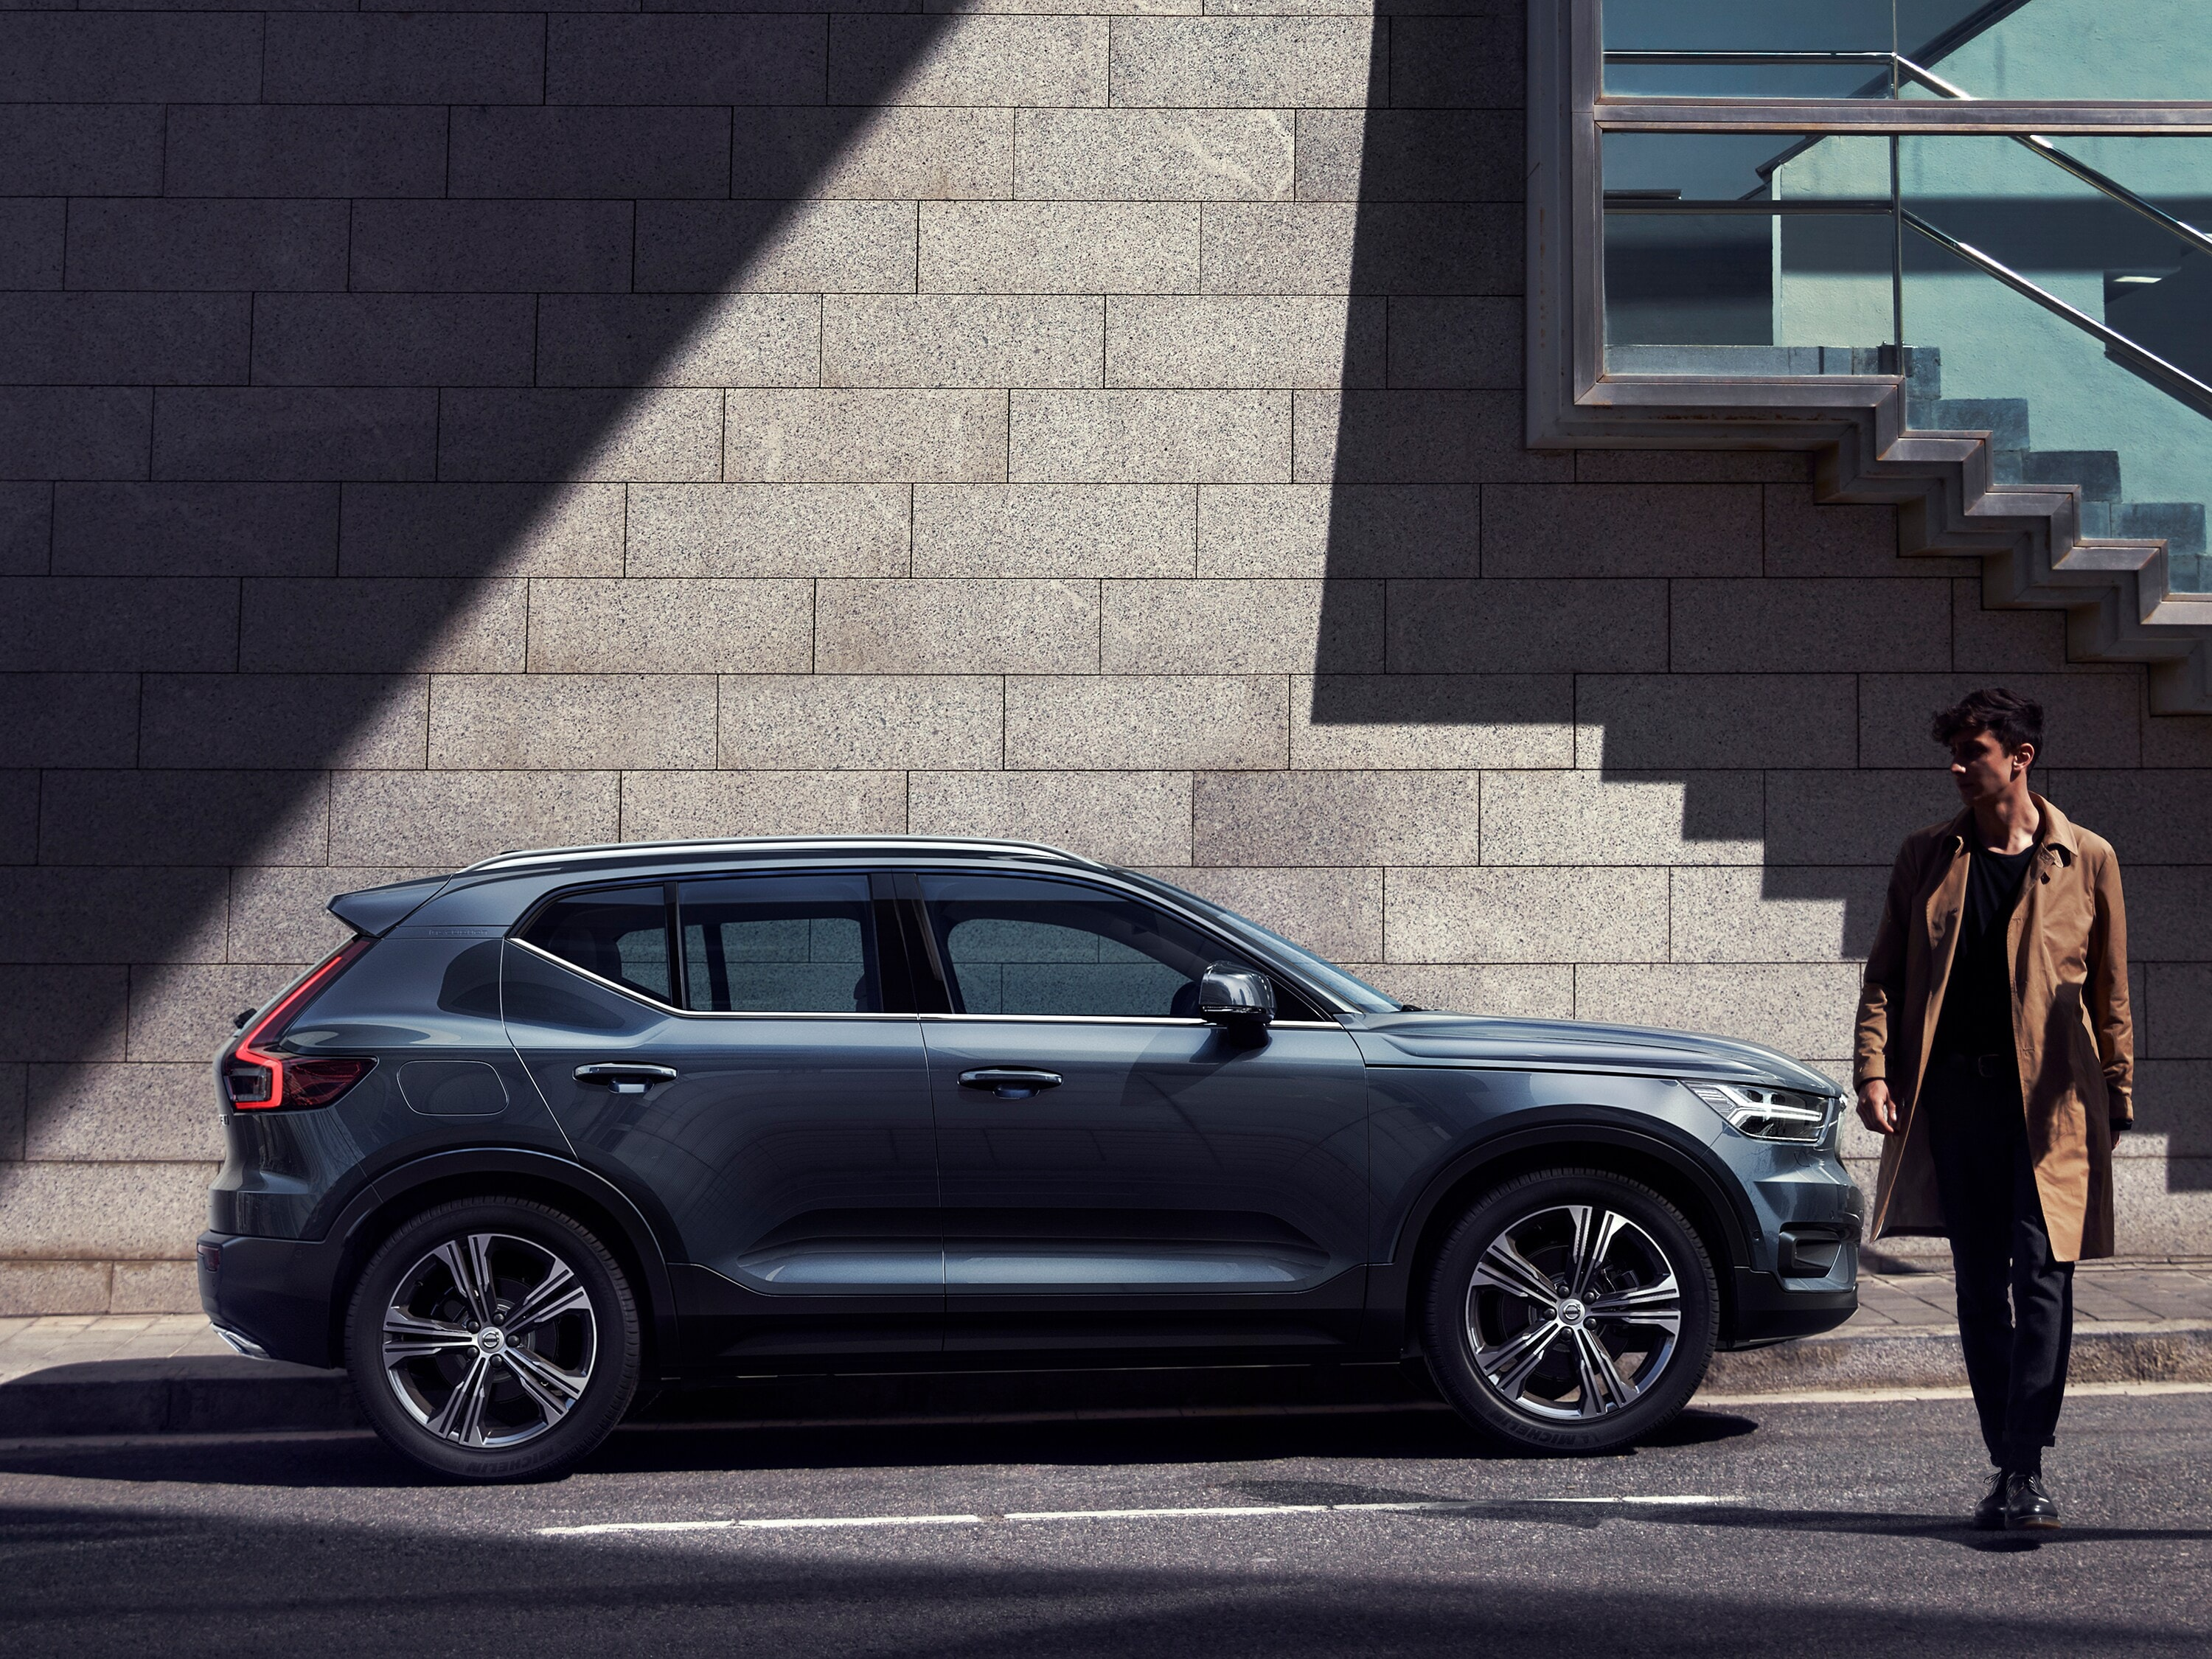 A man and woman cross the road in front of a parked Volvo XC40